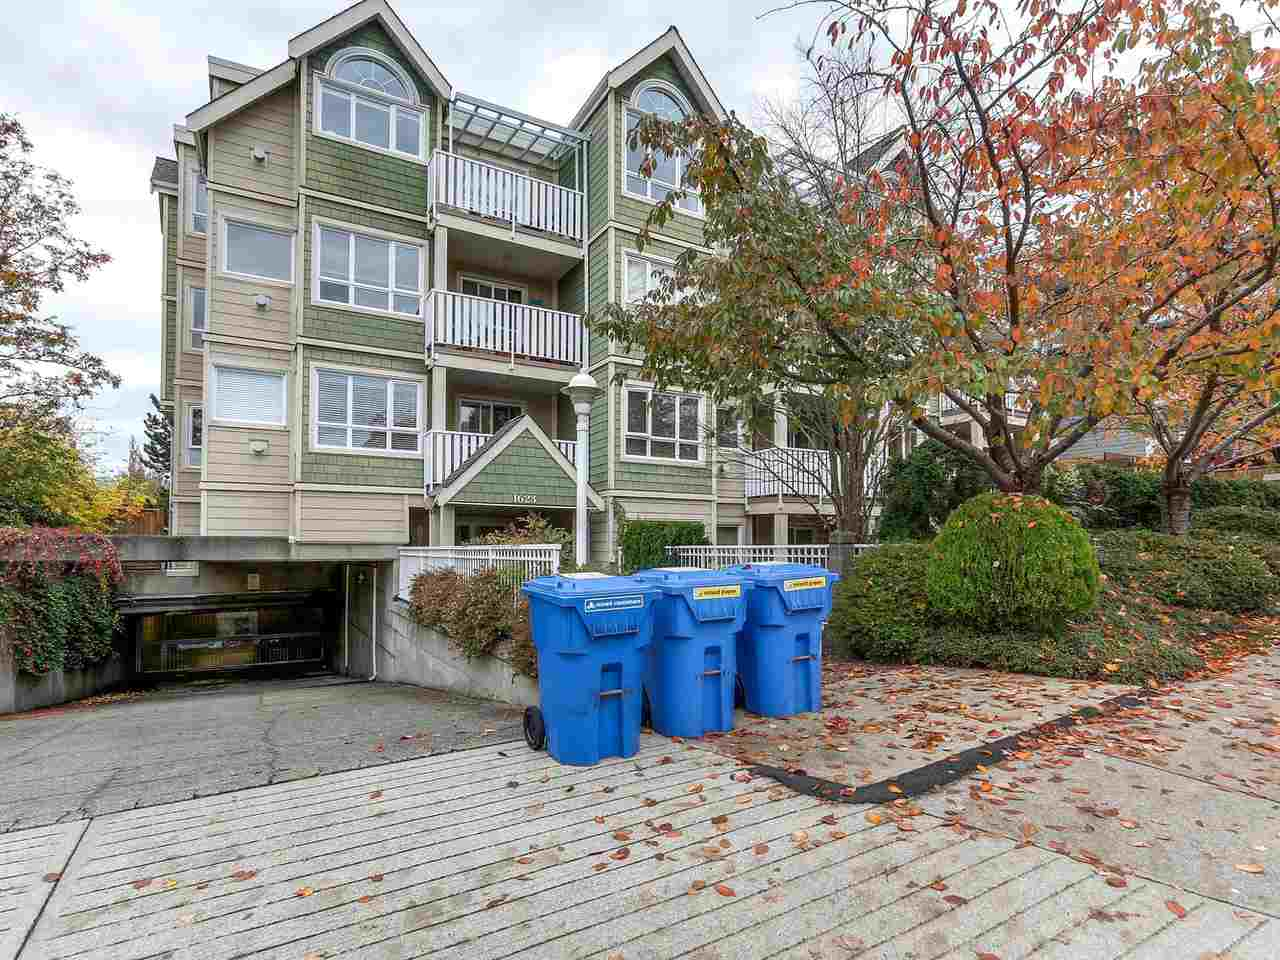 "Main Photo: 301 1623 E 2ND Avenue in Vancouver: Grandview VE Condo for sale in ""GRANDVIEW MANOR"" (Vancouver East)  : MLS® # R2122830"